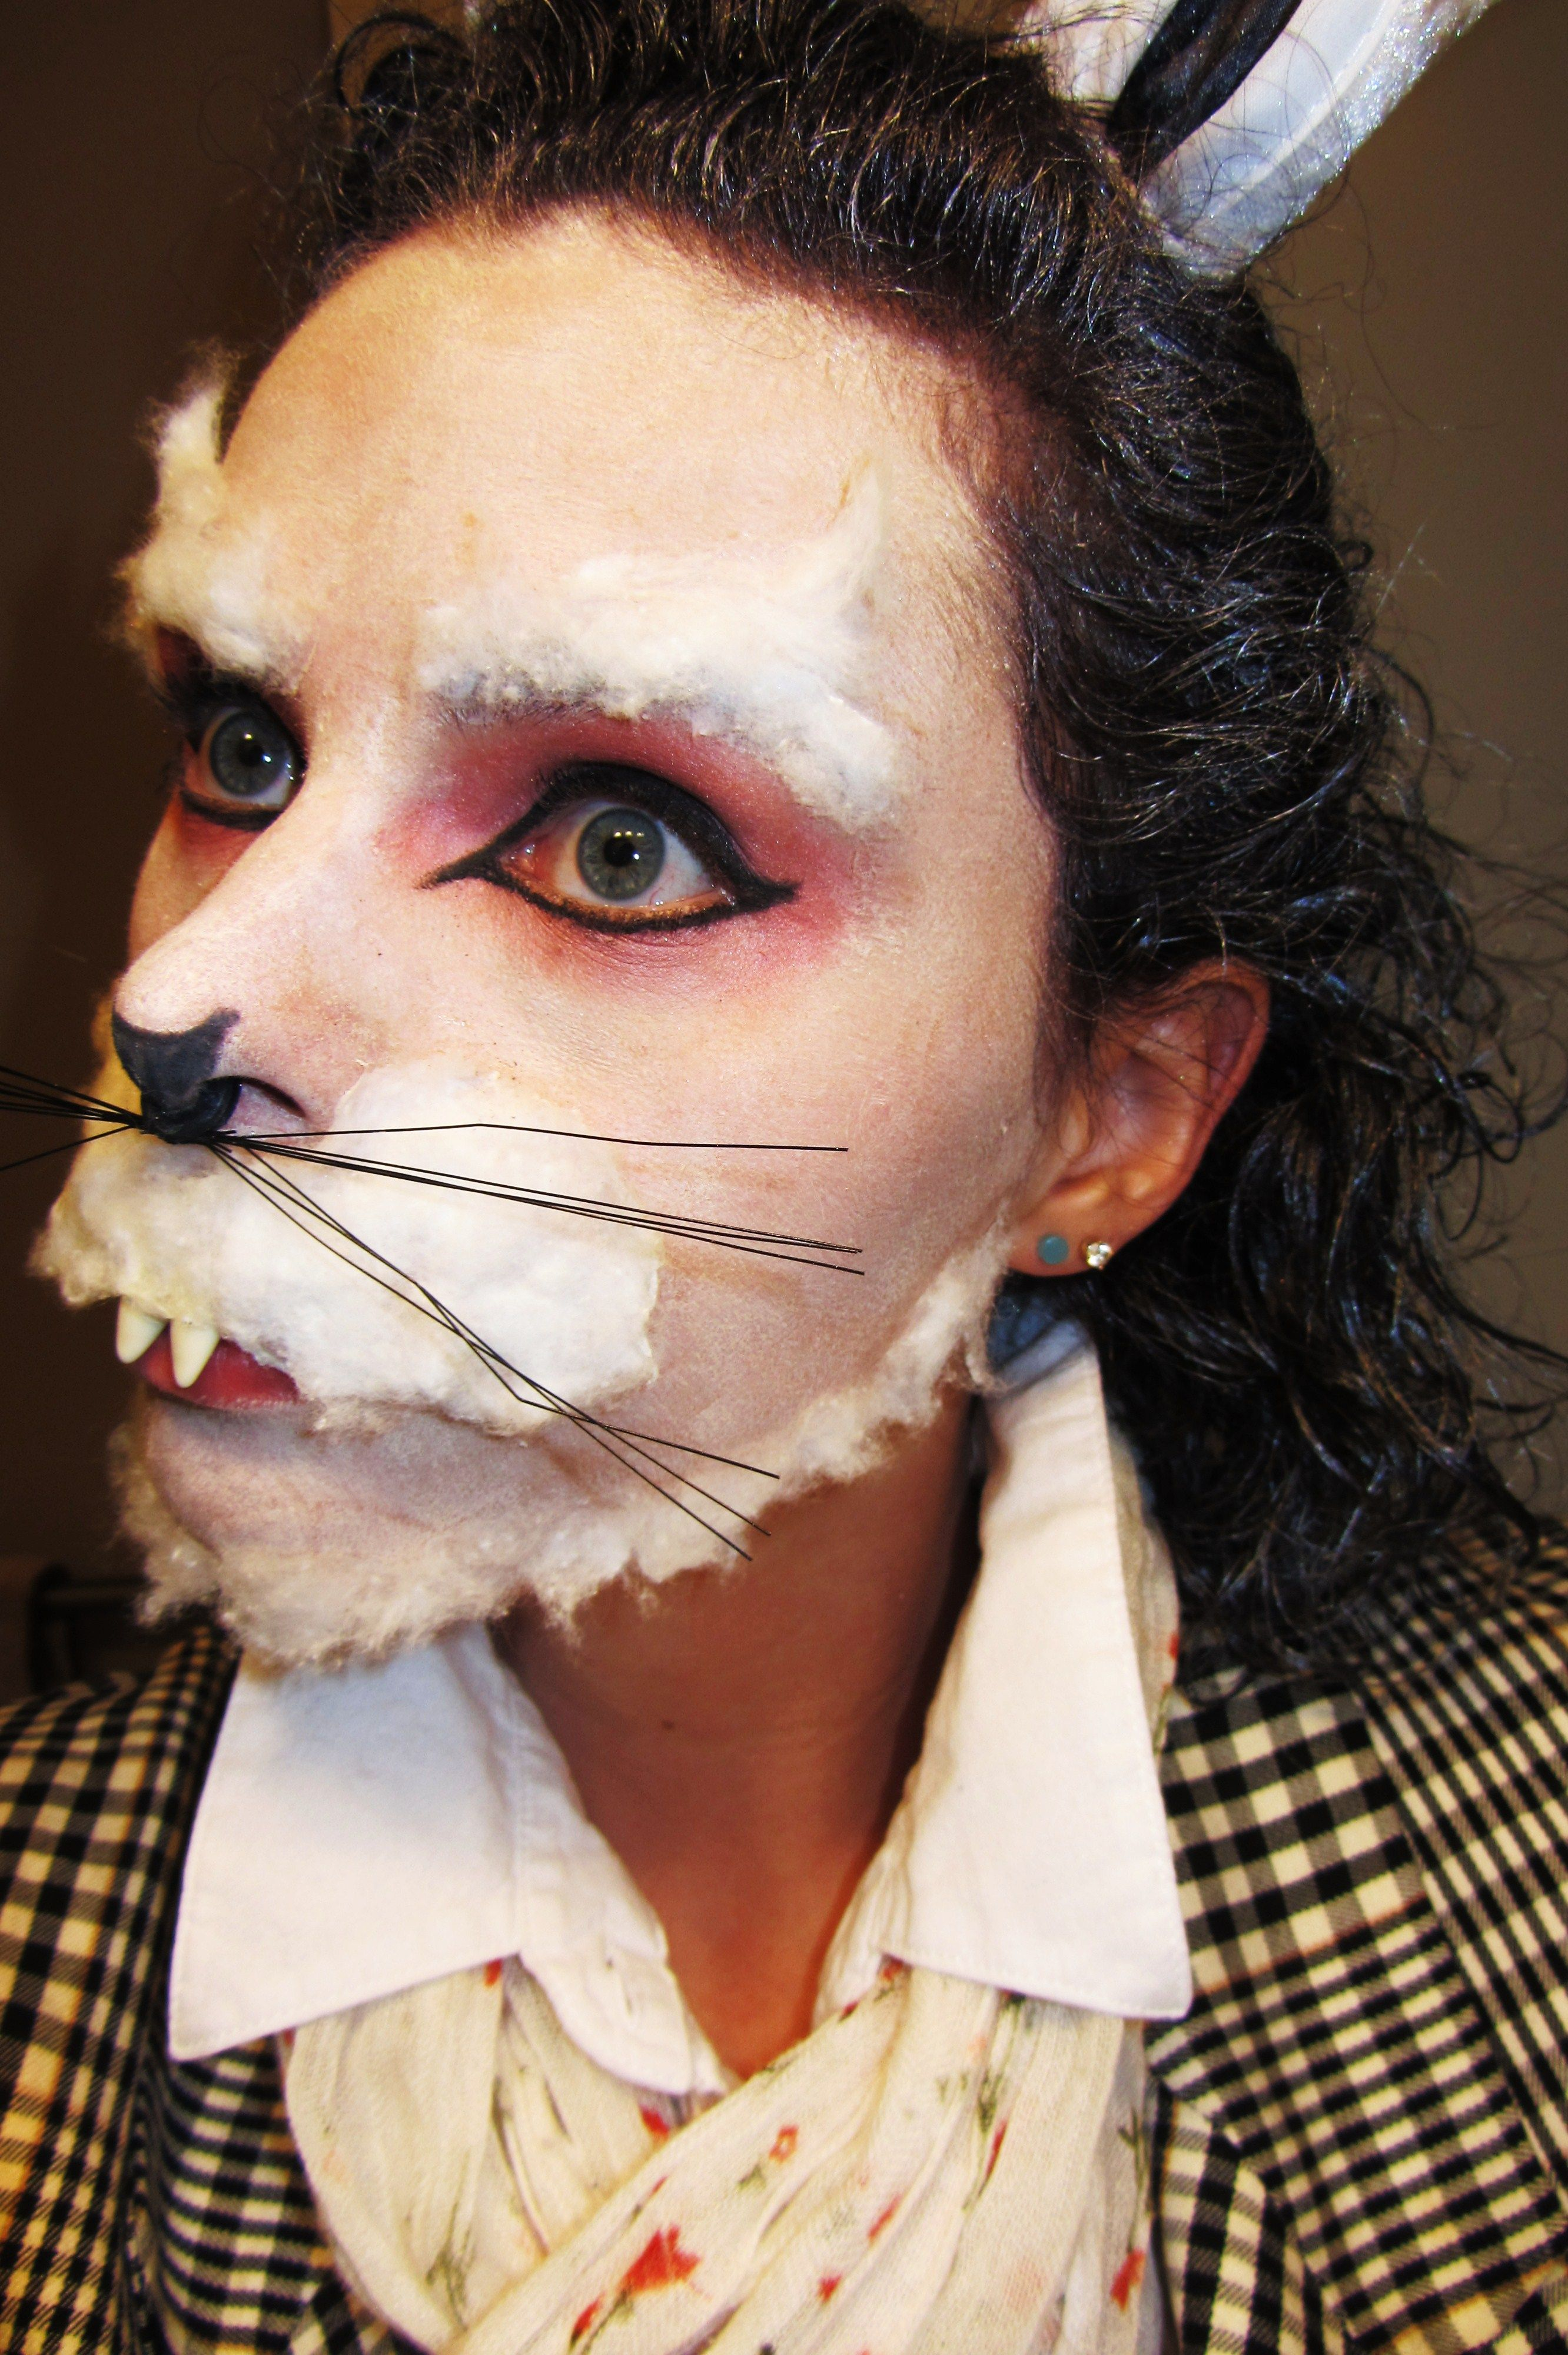 The White Rabbit Halloween Makeup | Paint yourself | Pinterest ...